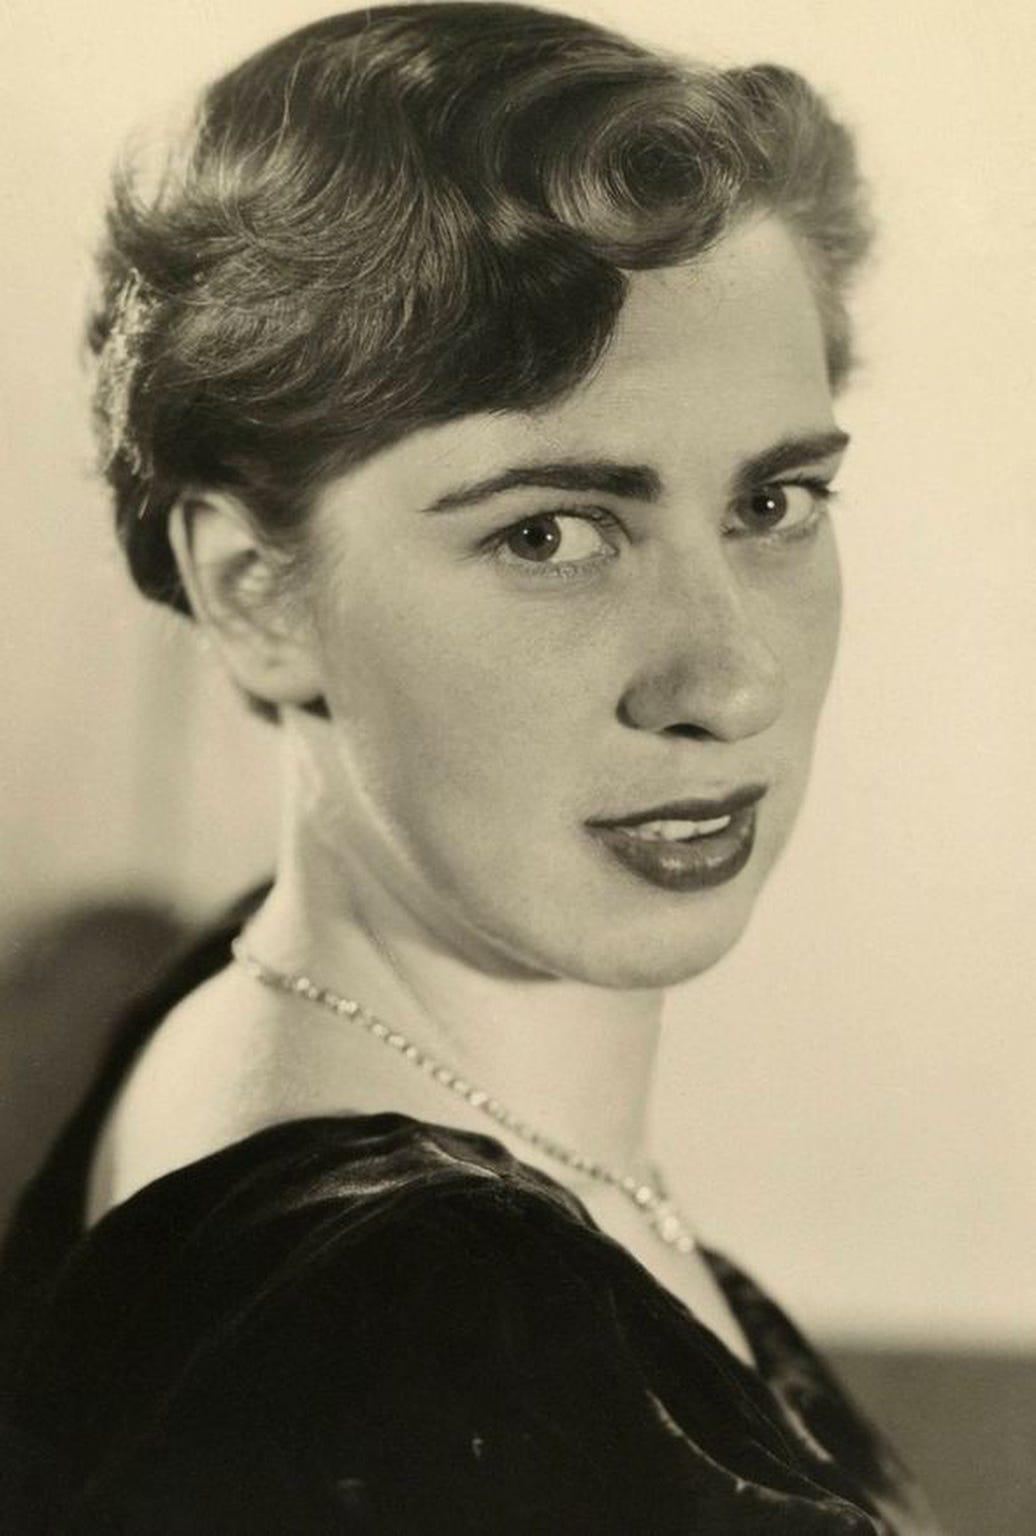 A young Eva Schloss is photographed after Auschwitz.